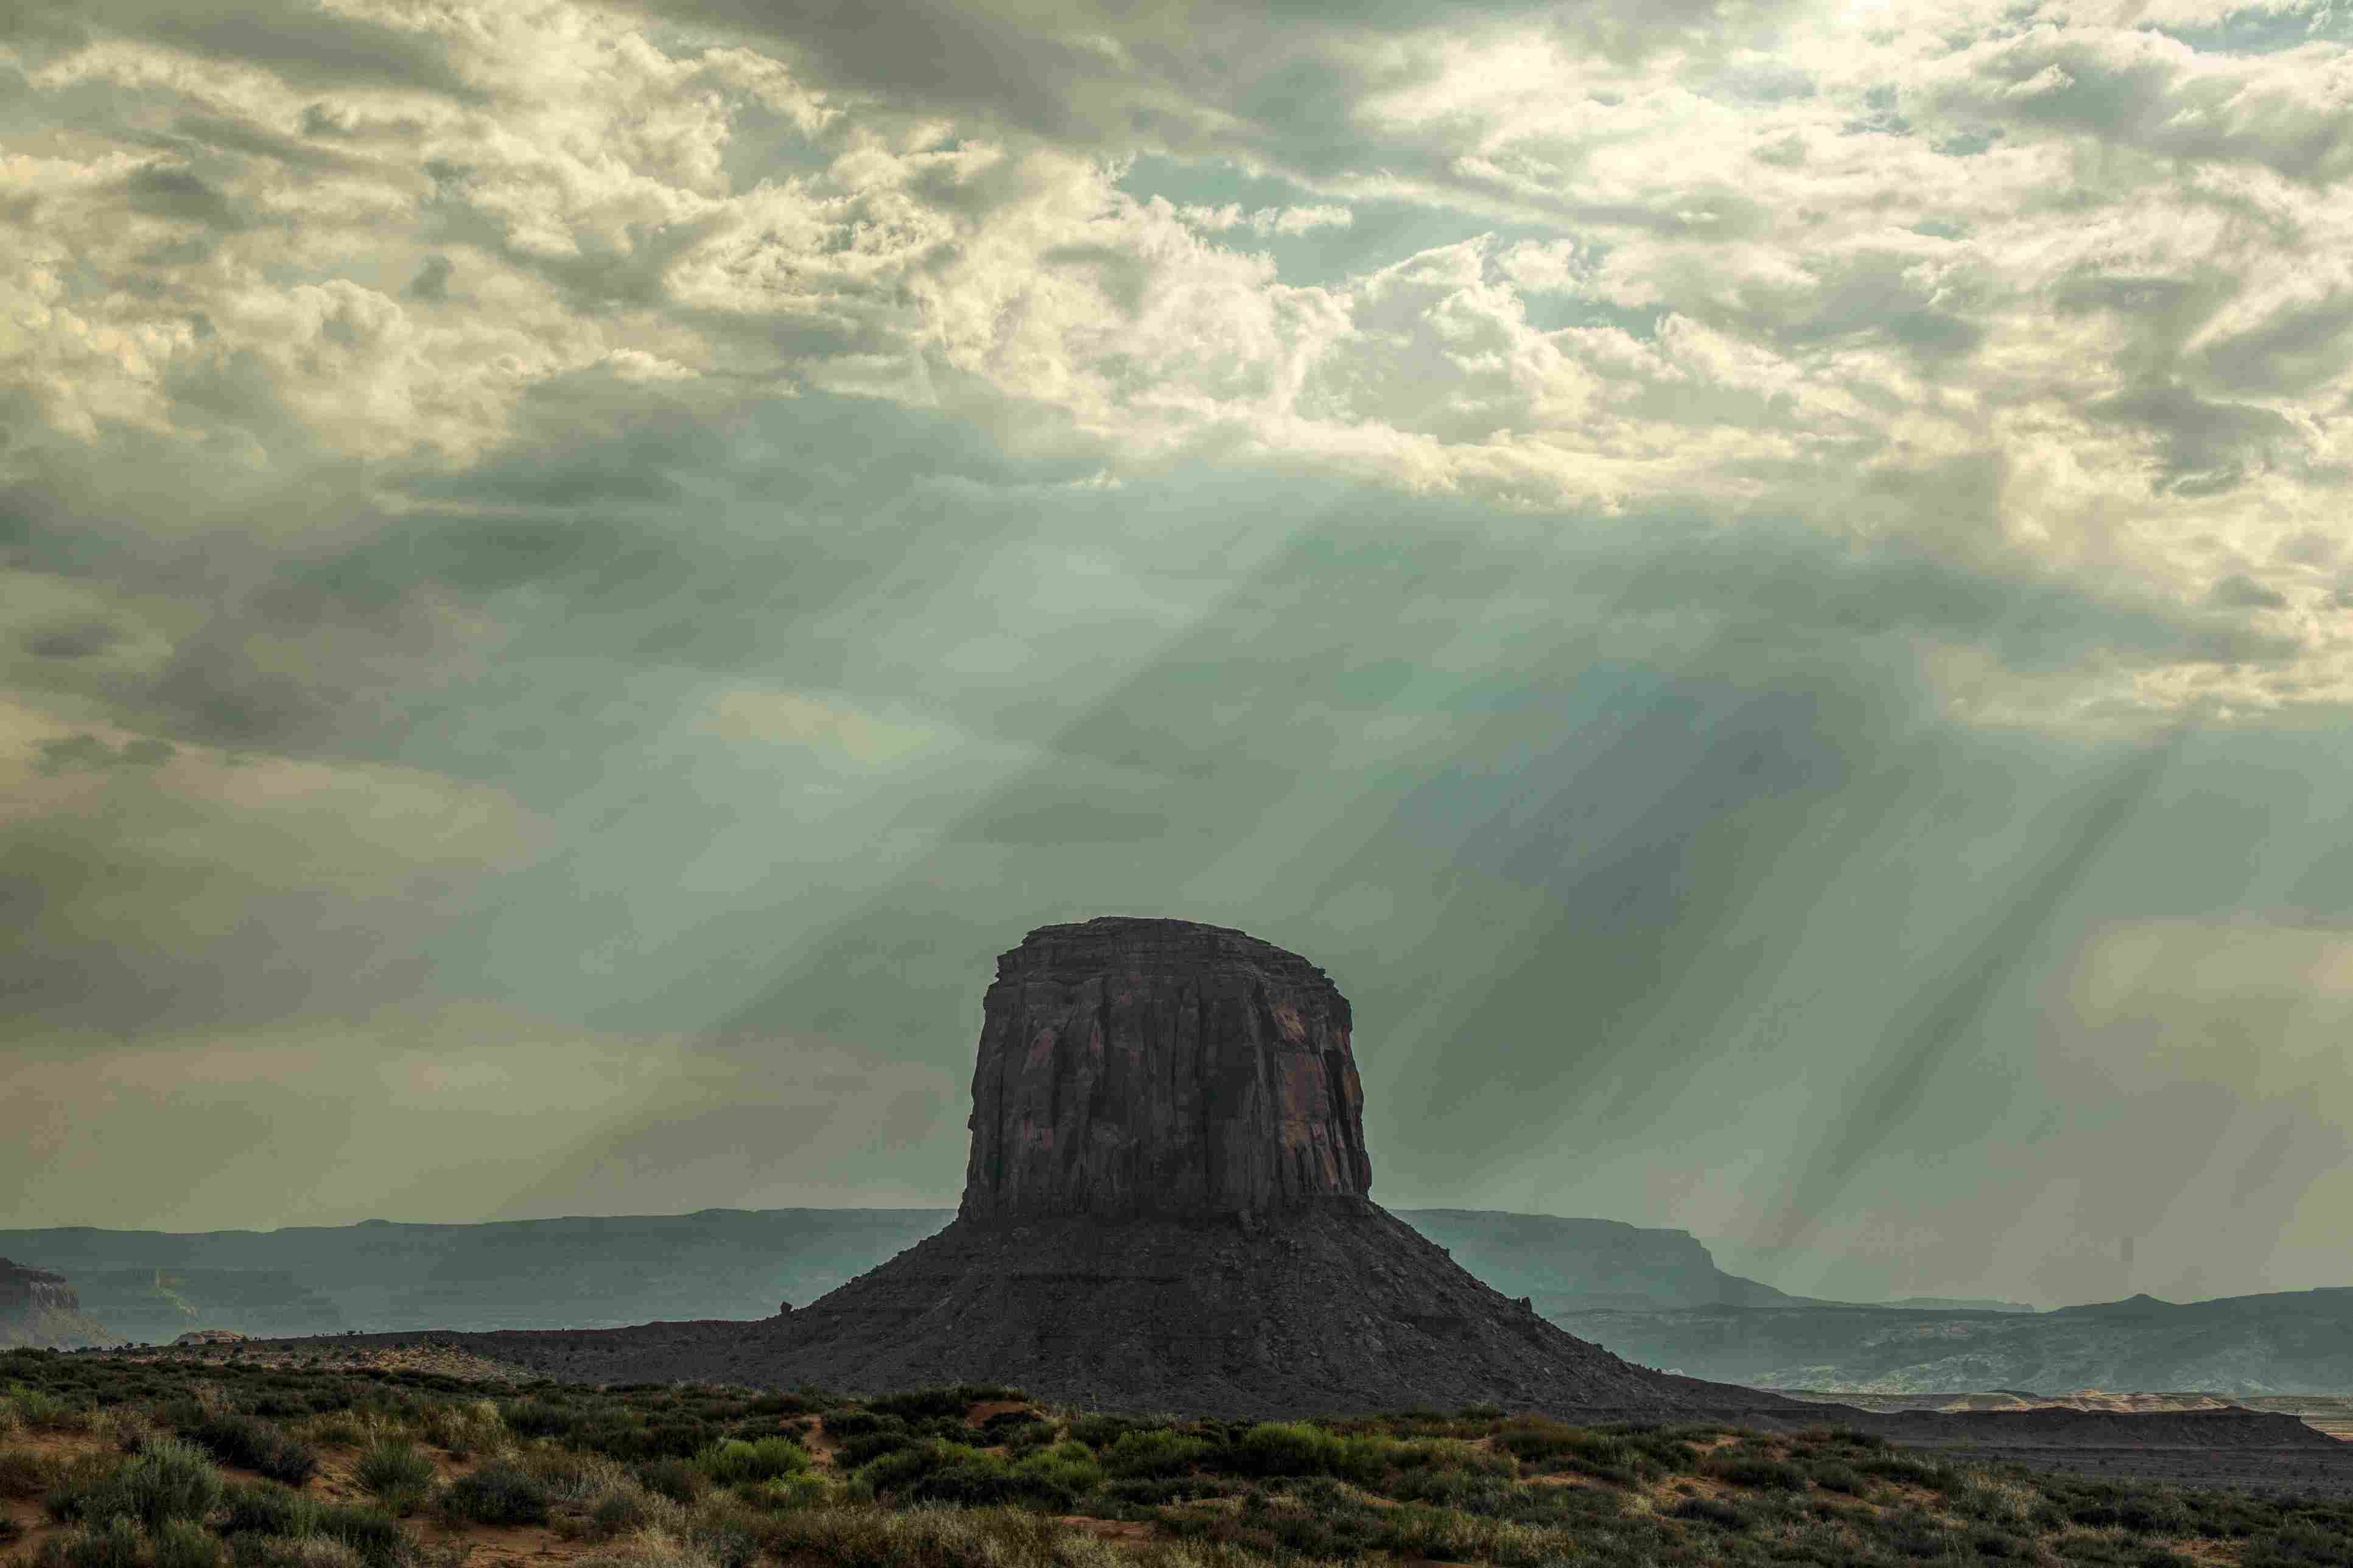 Monument Valley illuminated by the sun